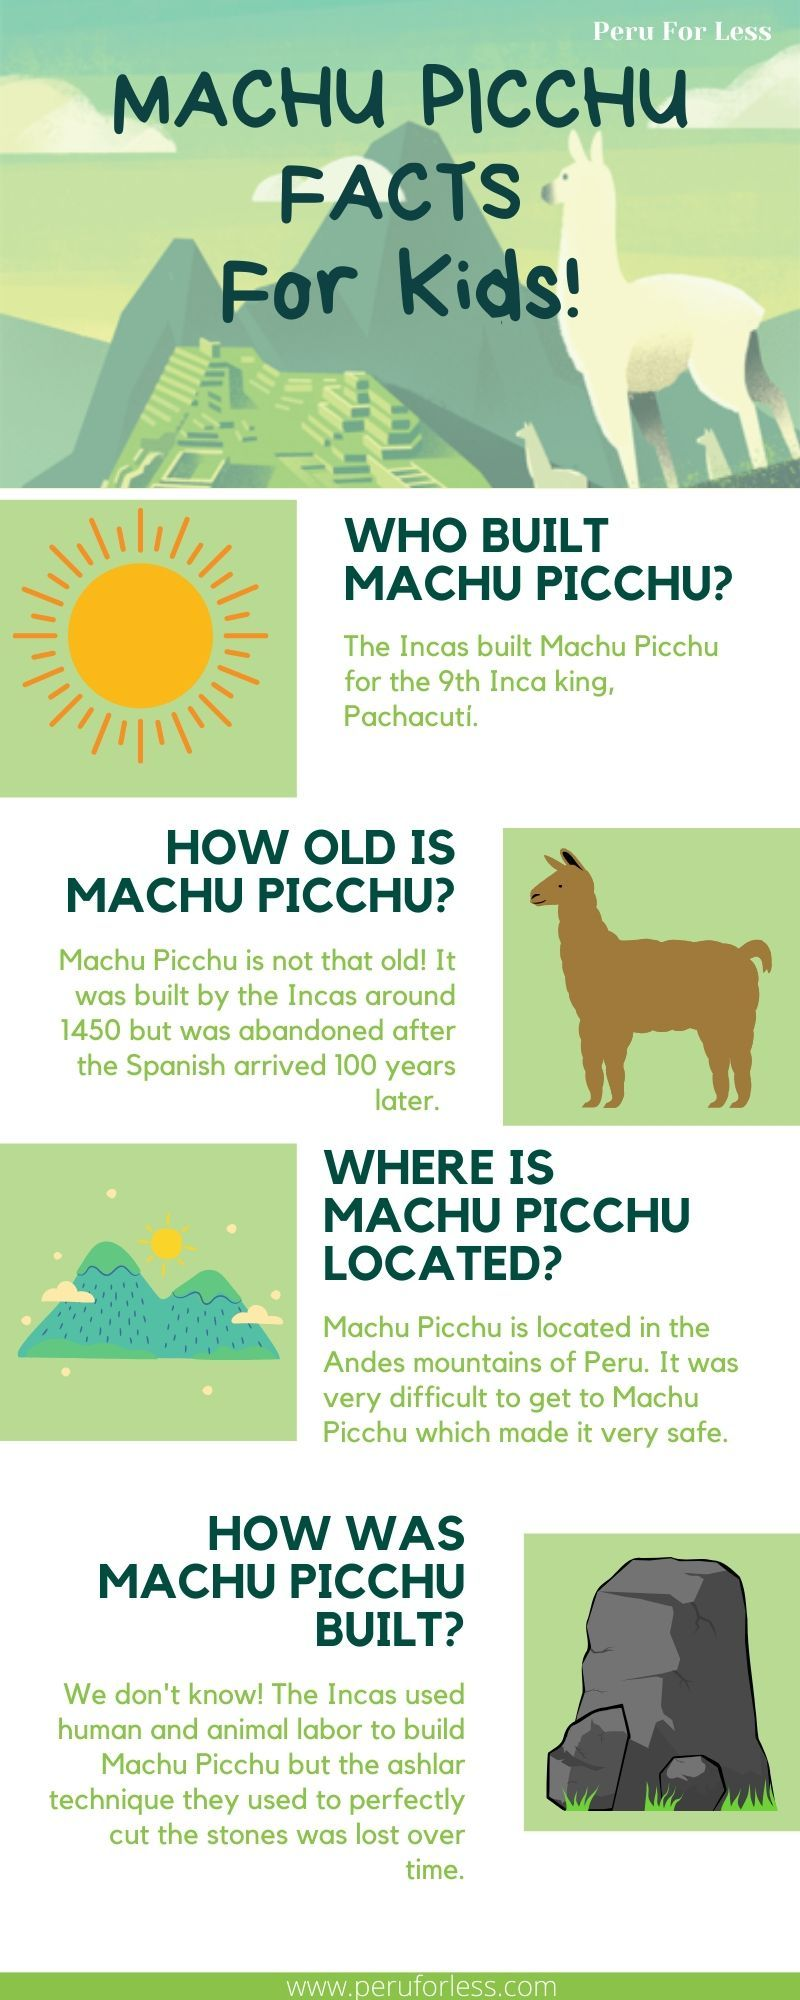 Machu Picchu Facts For Kids In 2020 Machu Picchu Facts Facts For Kids Picchu